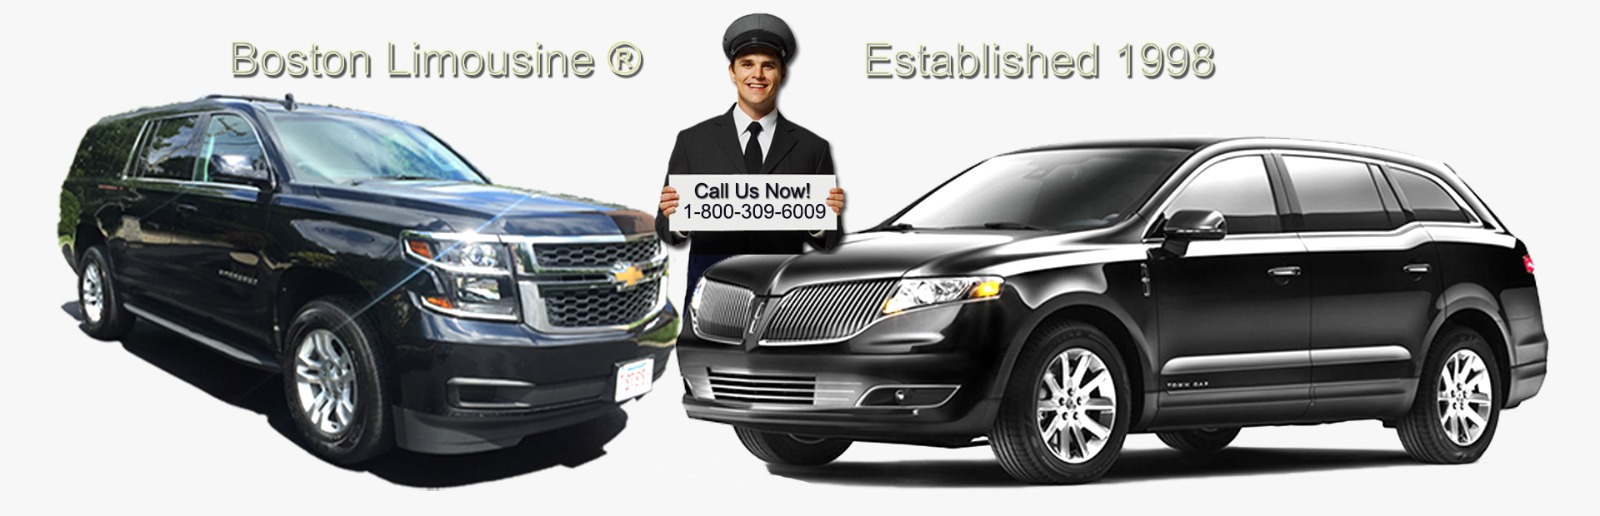 Rates and Reservation at Boston Limousine